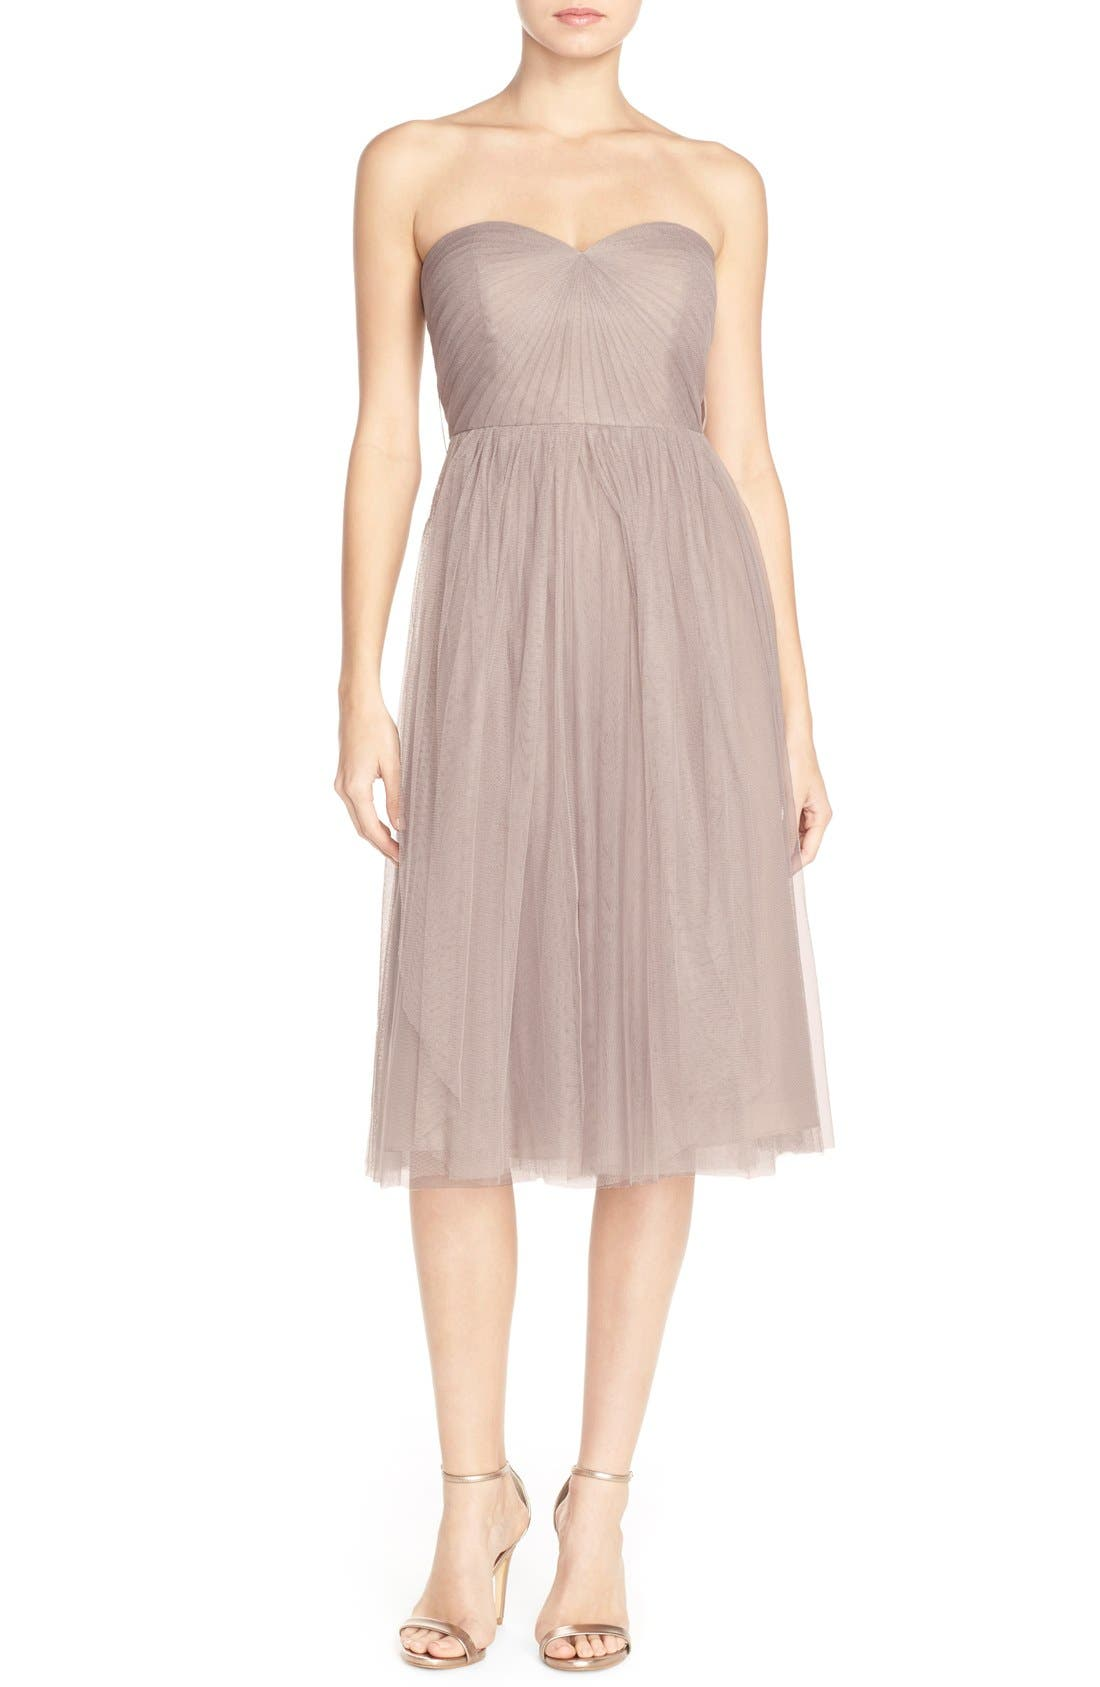 Alternate Image 1 Selected - Jenny Yoo 'Maia' Convertible Tulle Tea Length Fit & Flare Dress